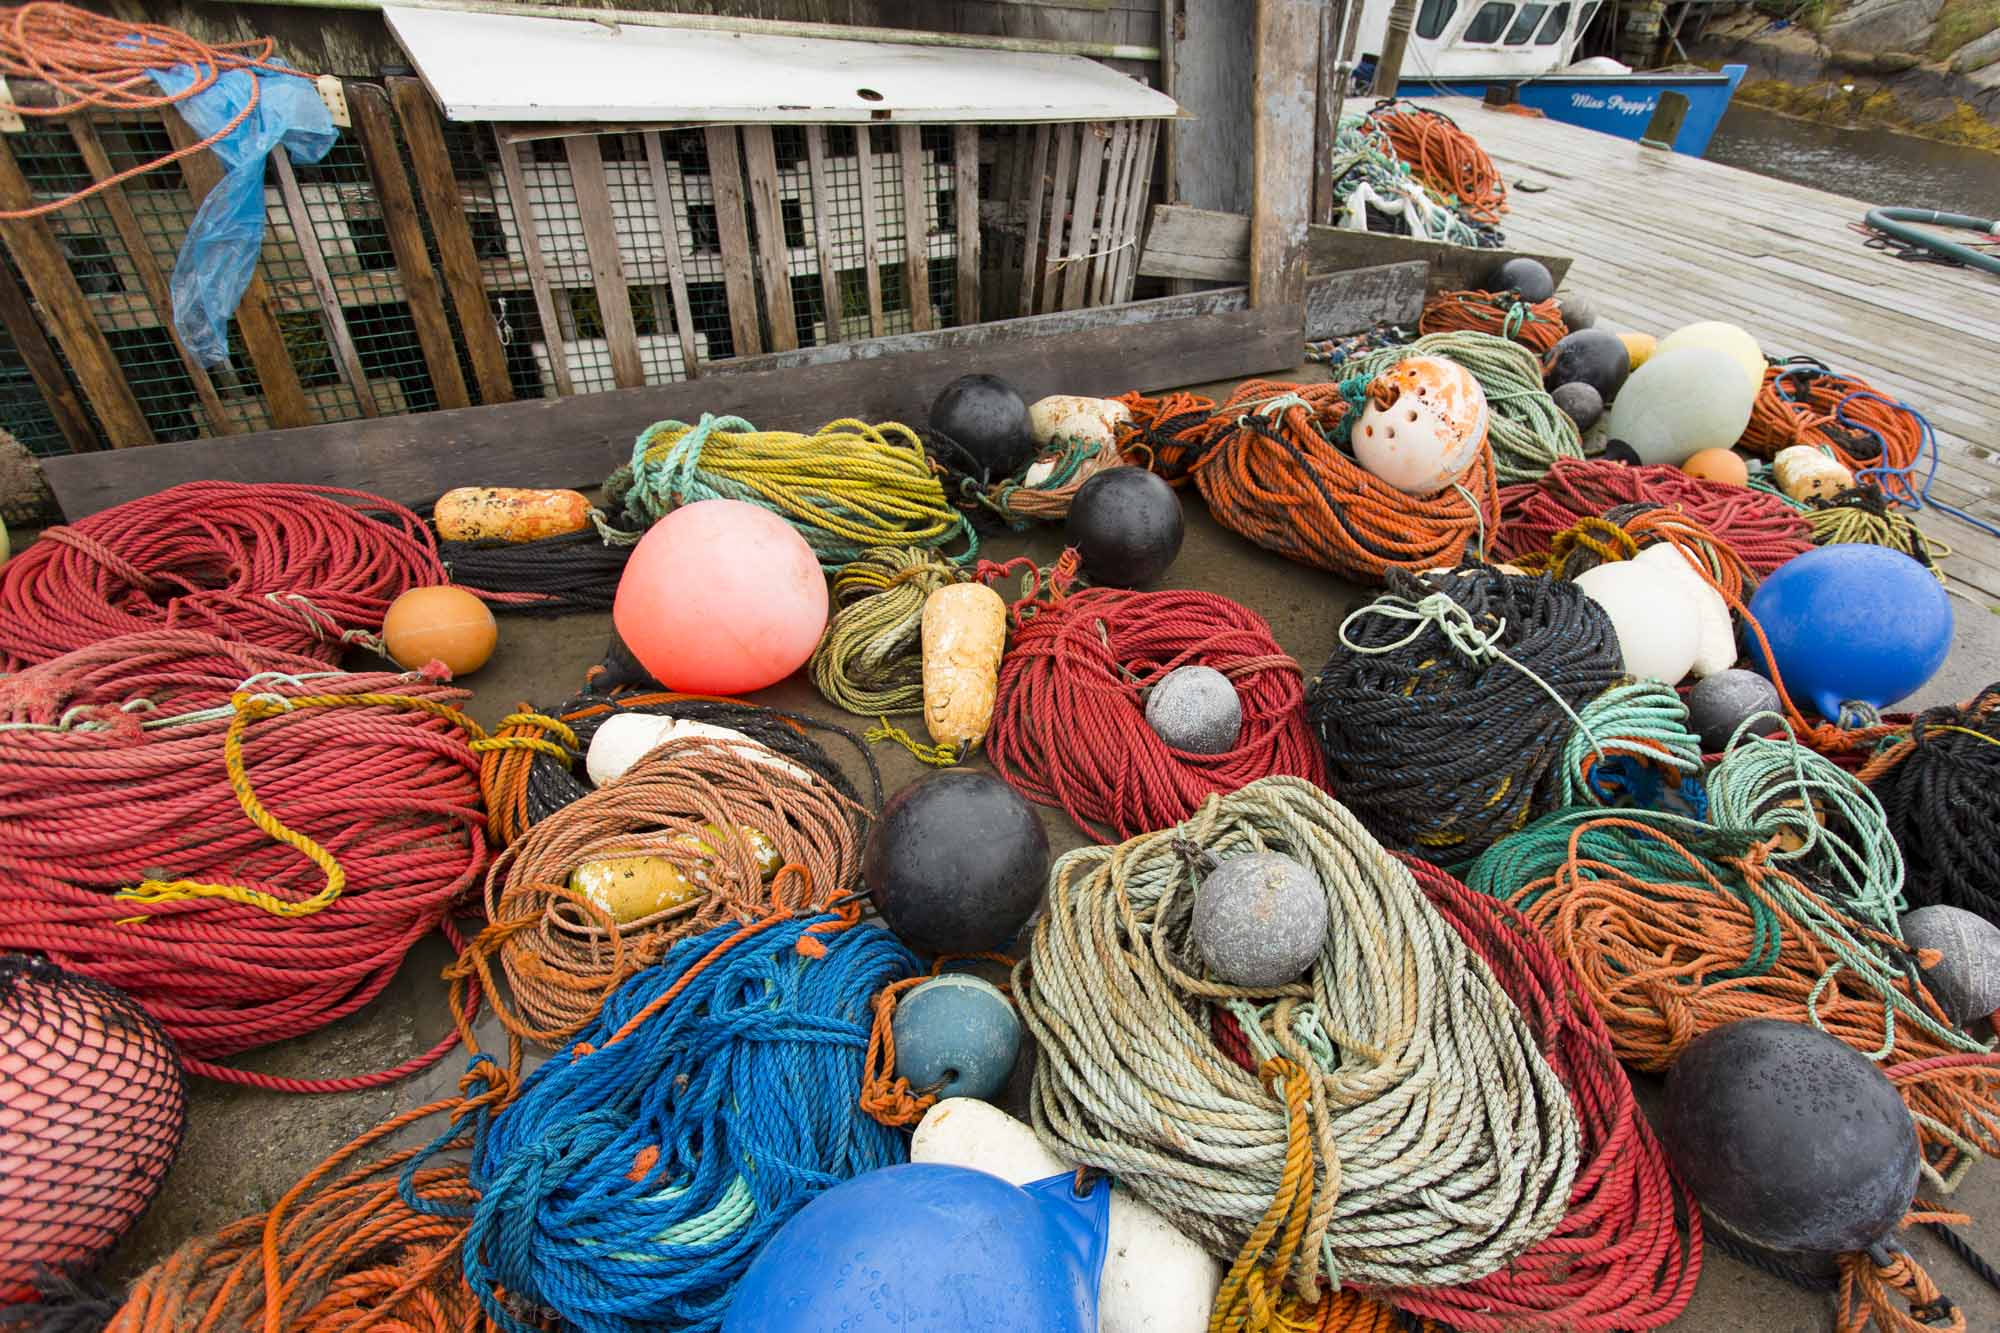 Peggy's Cove Fishing lines